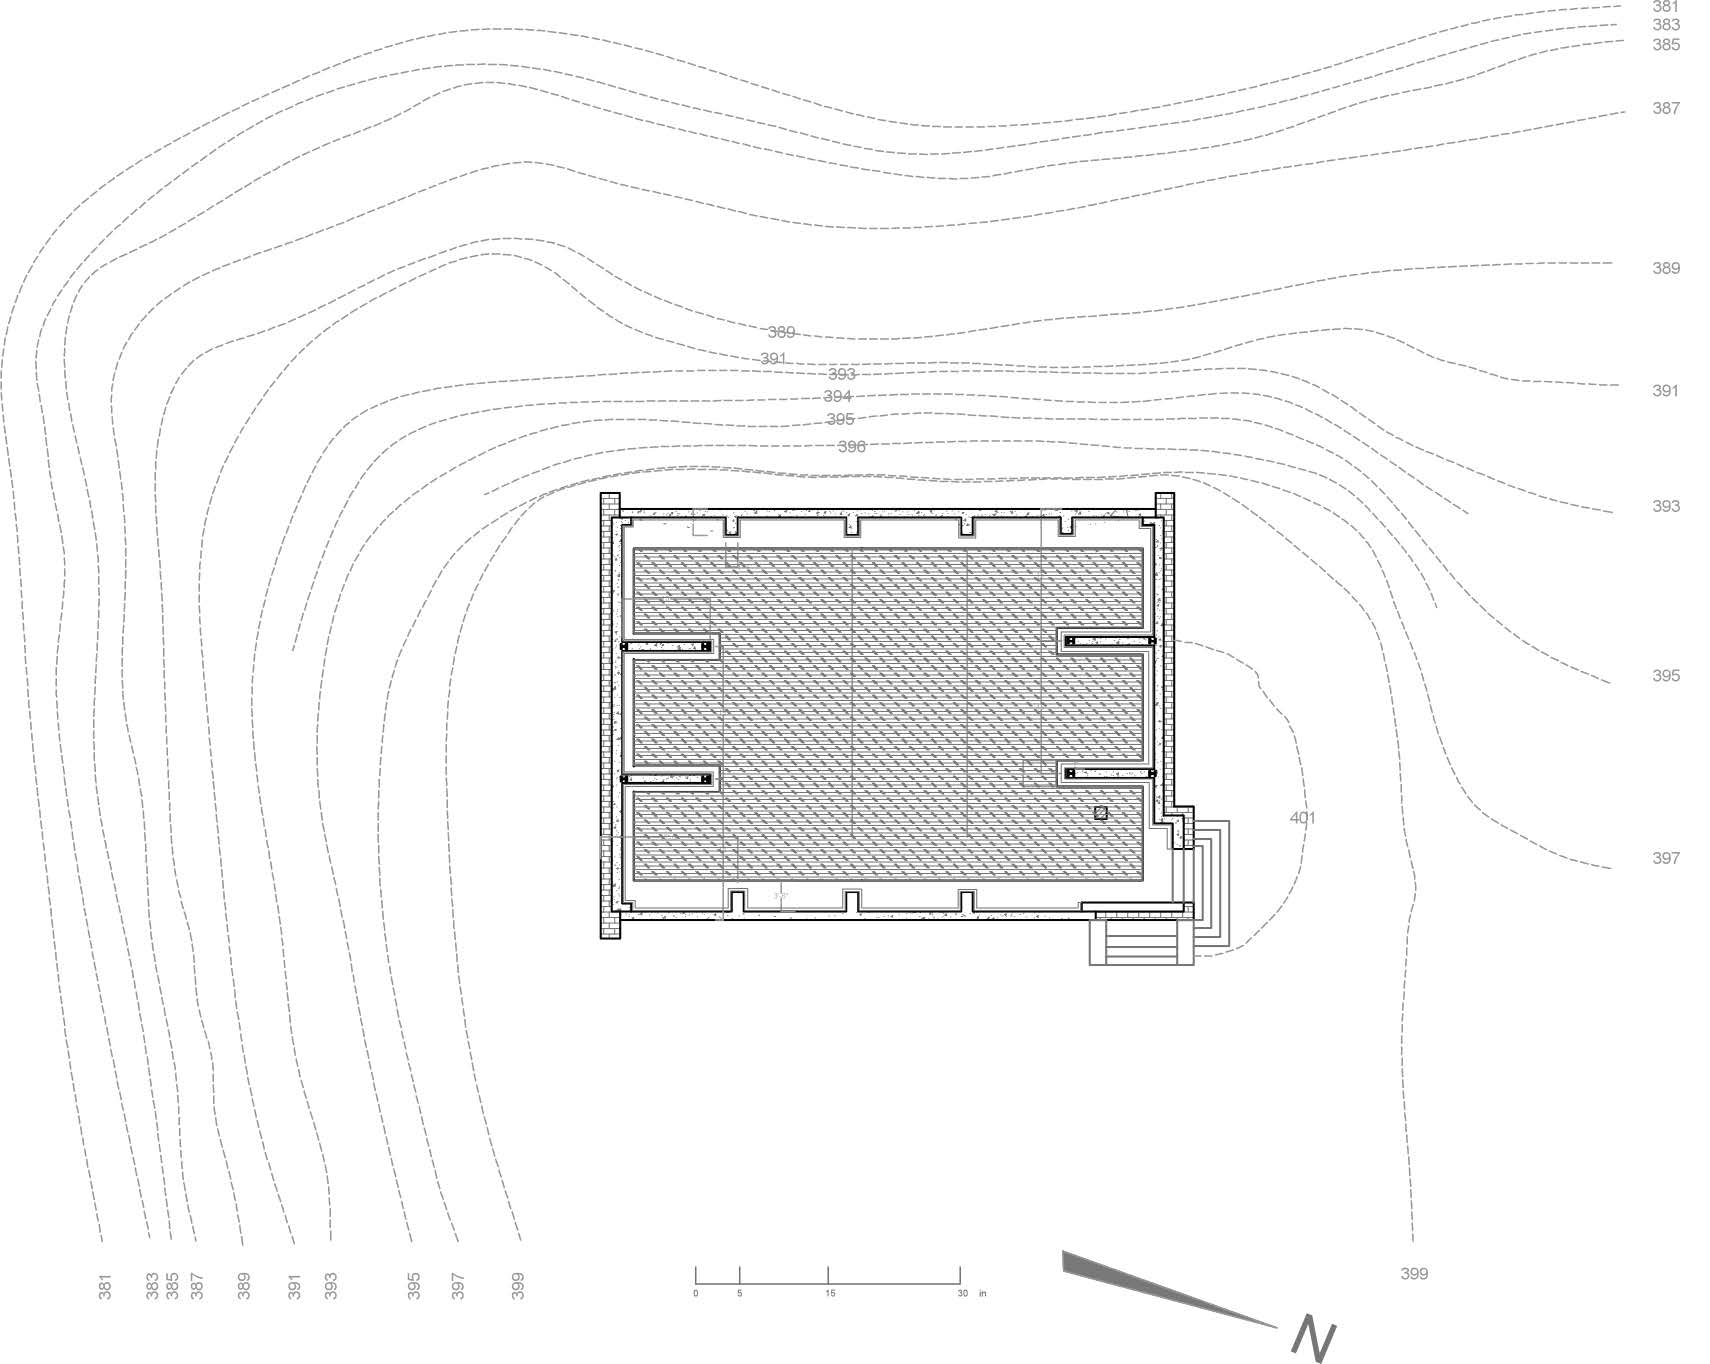 Old Stone Church Plan.jpg